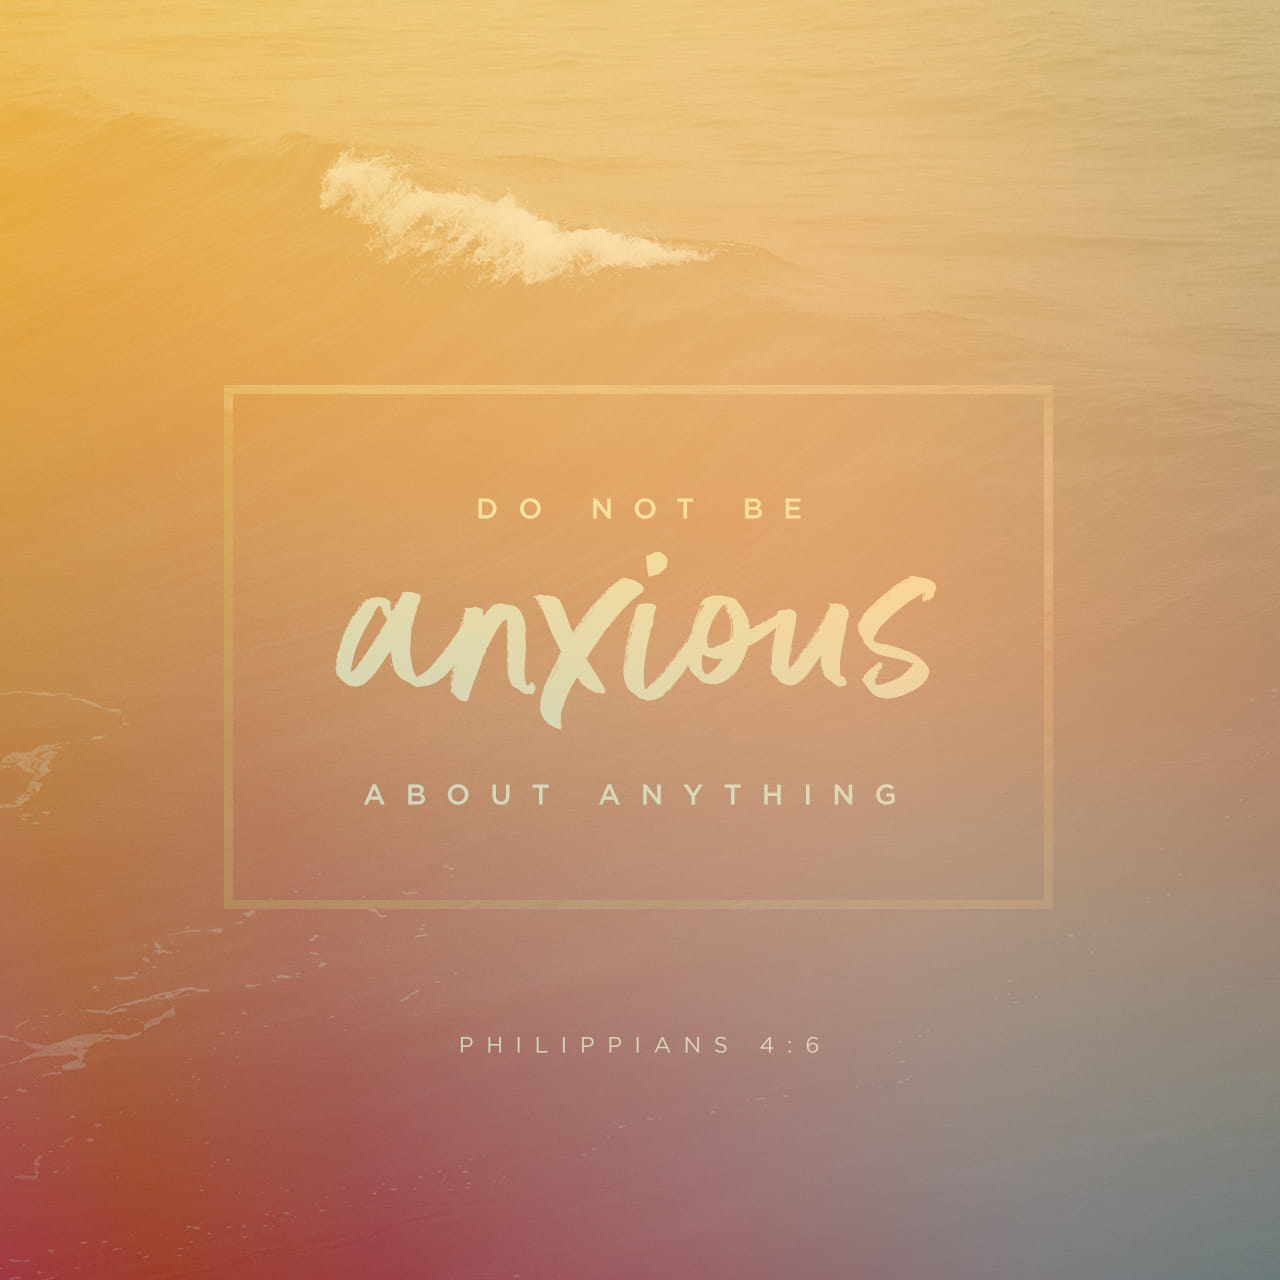 Philippians 4:6 Be anxious for nothing, but in everything by prayer and supplication, with thanksgiving, let your requests be made known to God | New King James Version (NKJV)